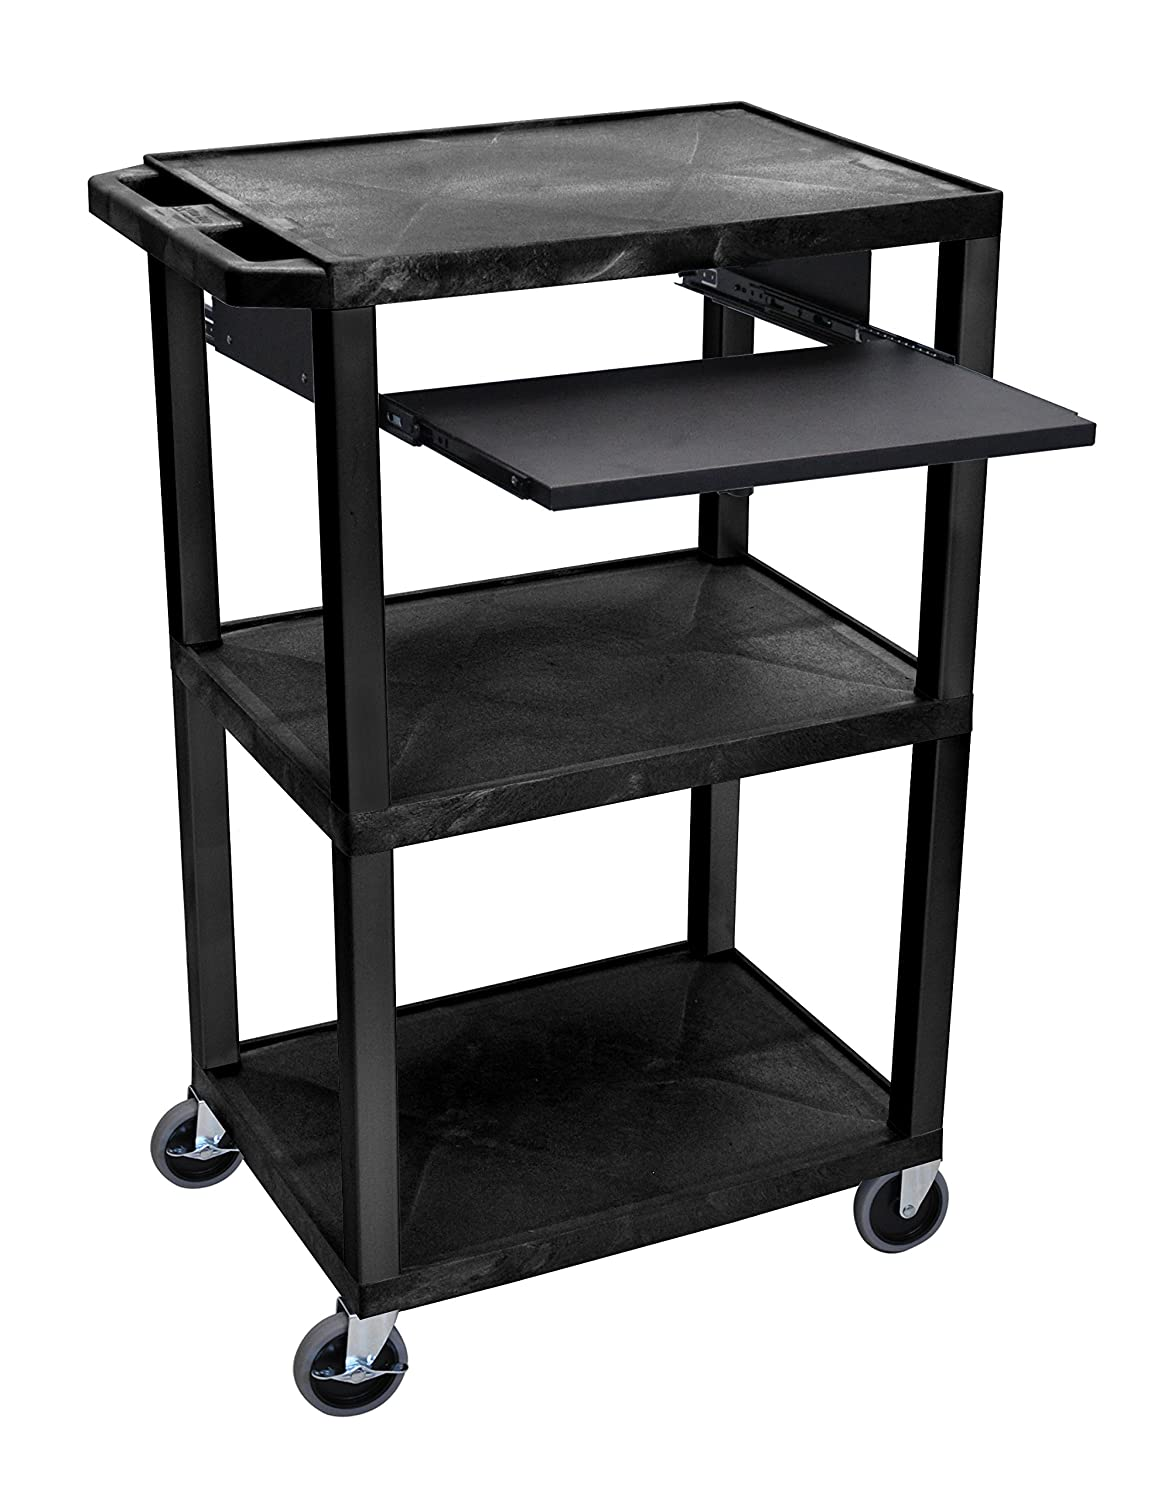 H WILSON WTPS42E-B Presentation Cart with Open Shelves and Pull Out Tray, Black